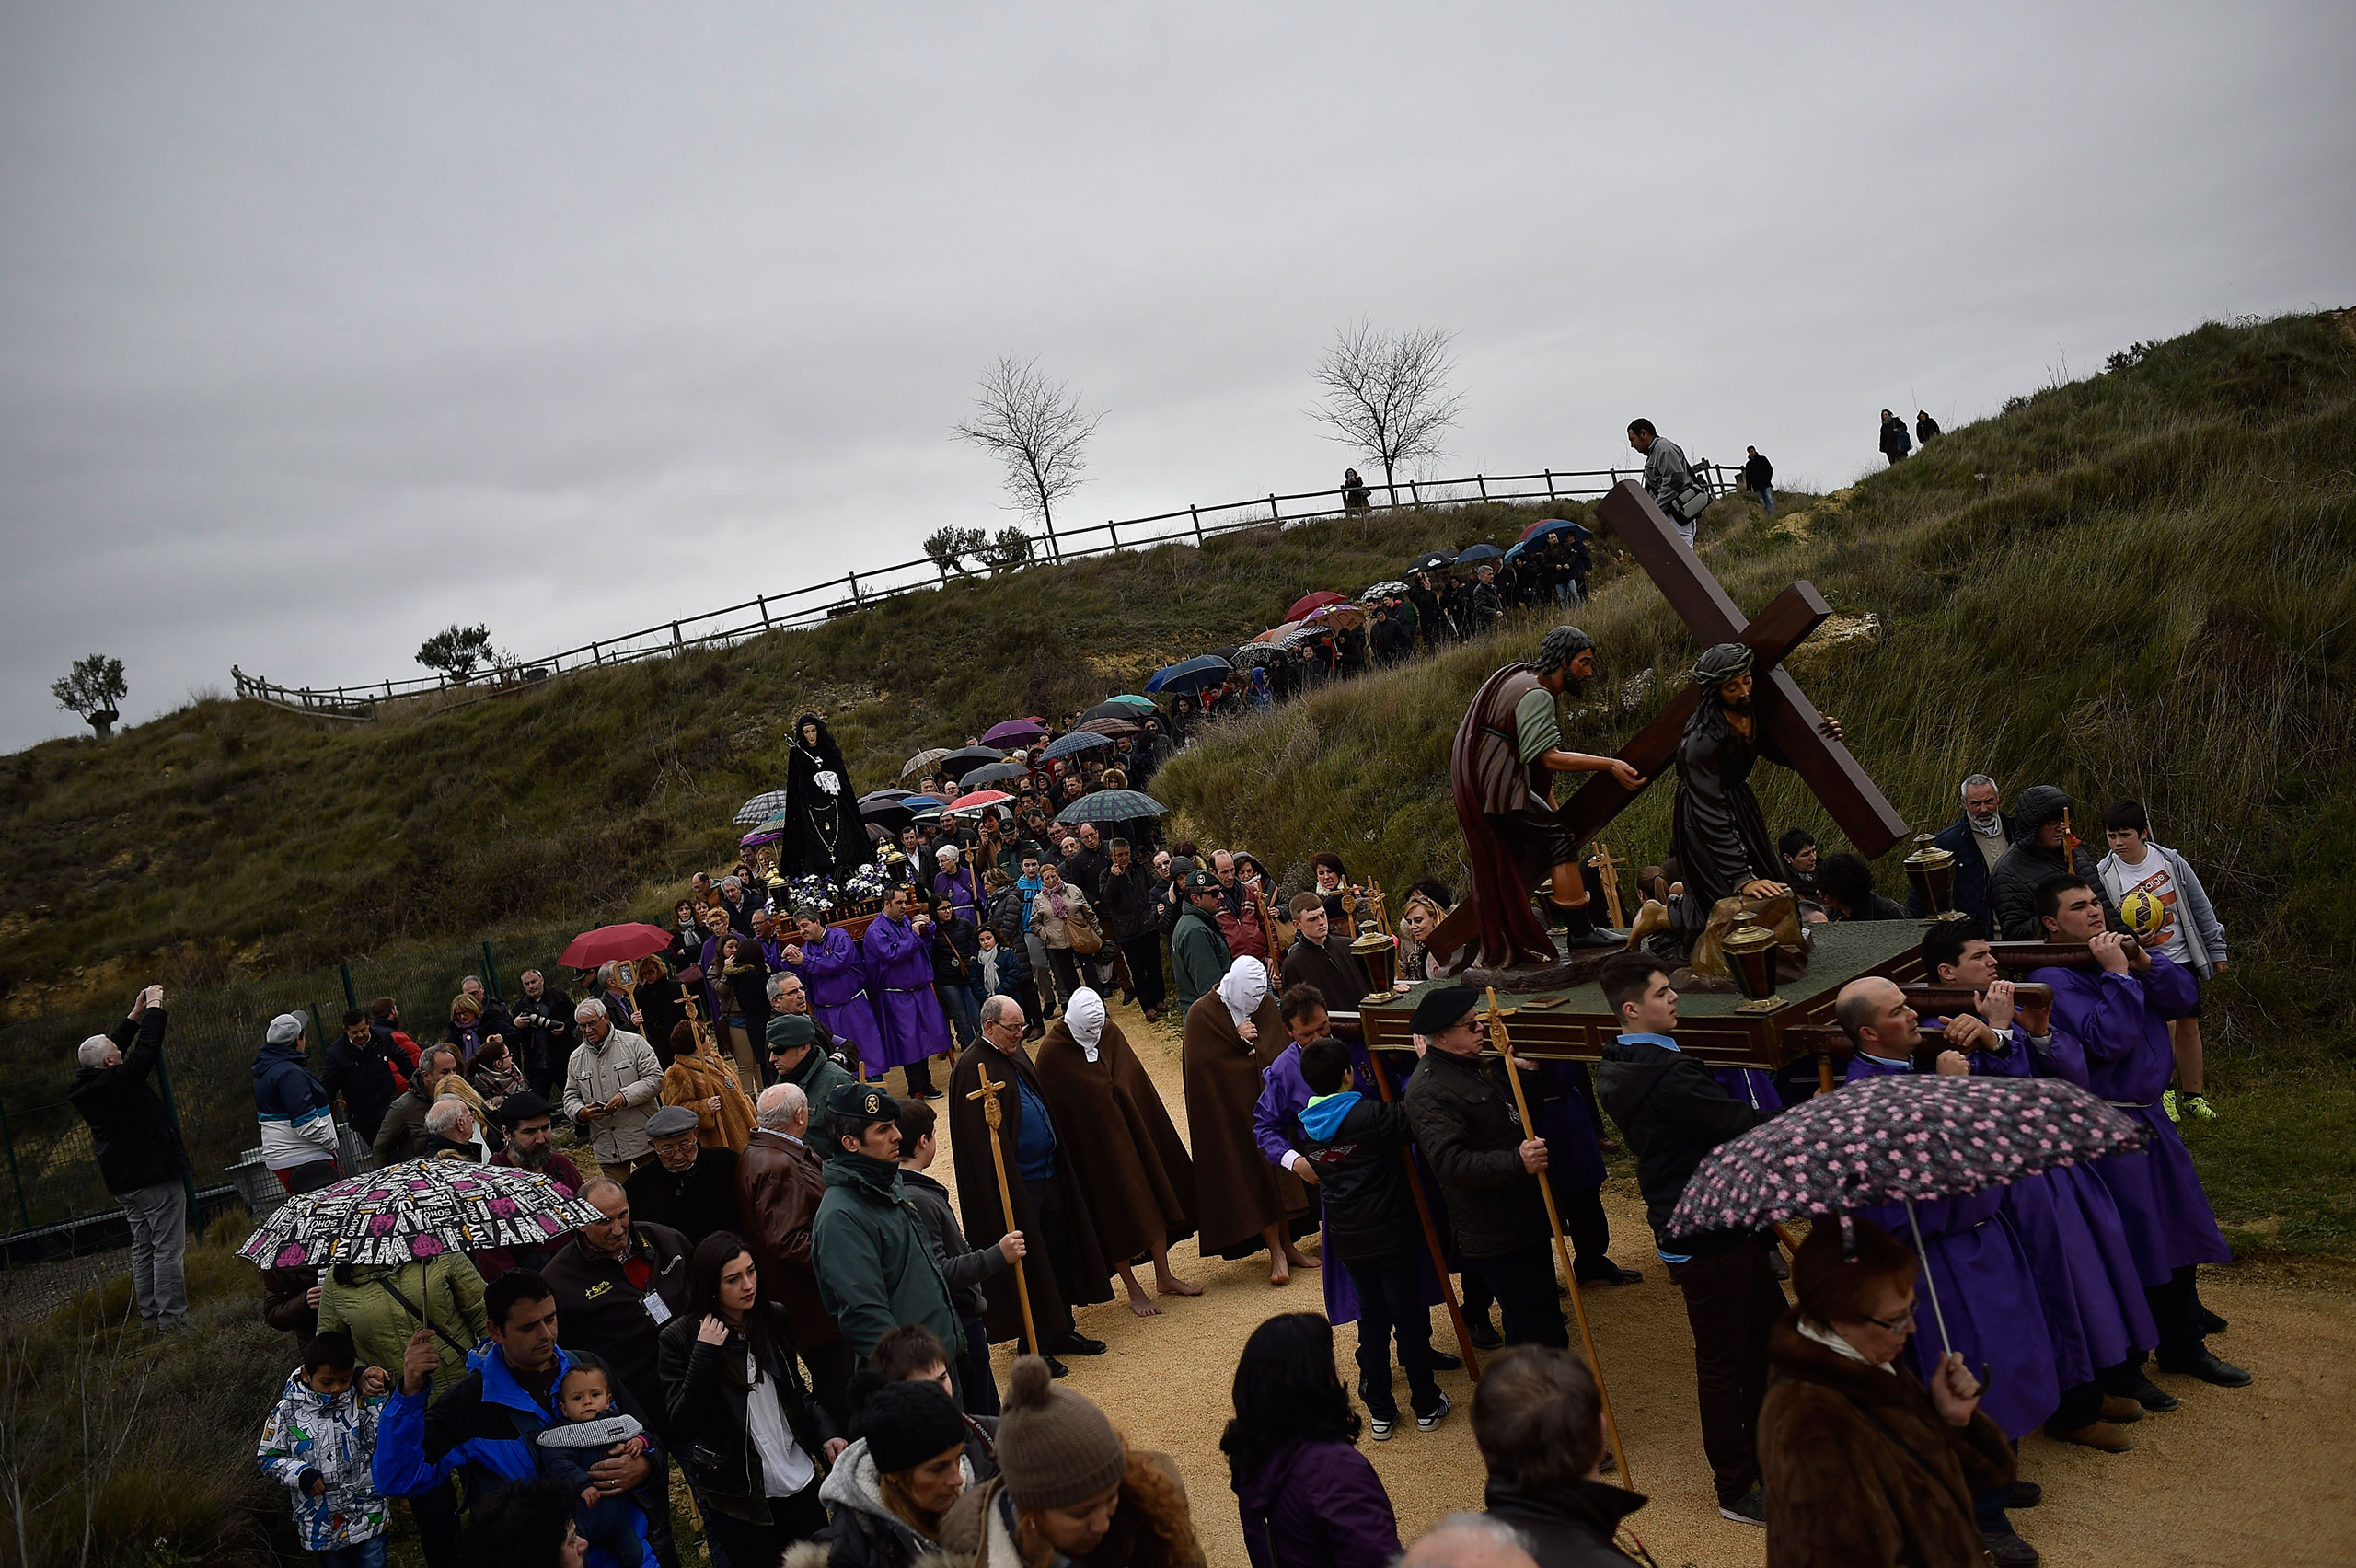 Masked penitents from the La Santa Vera Cruz brotherhood take part in an Easter procession known as 'Los Picaos' in the small village of San Vicente de La Sonsierra, northern Spain, March 25, 2016.